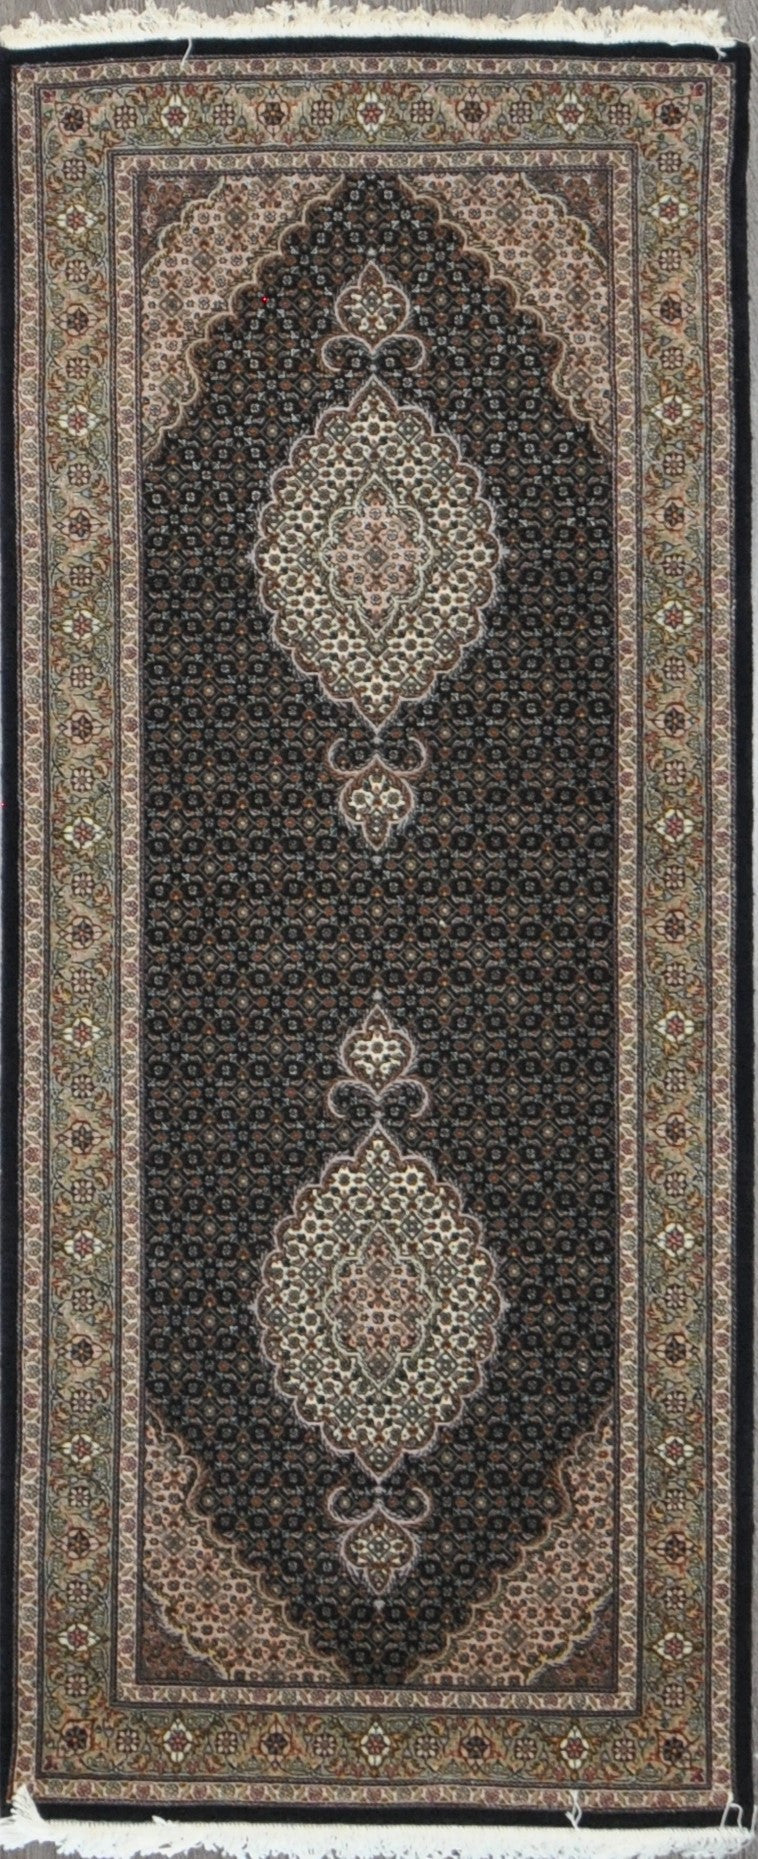 2.9x6.8 tabriz fish runner #34087 Sold